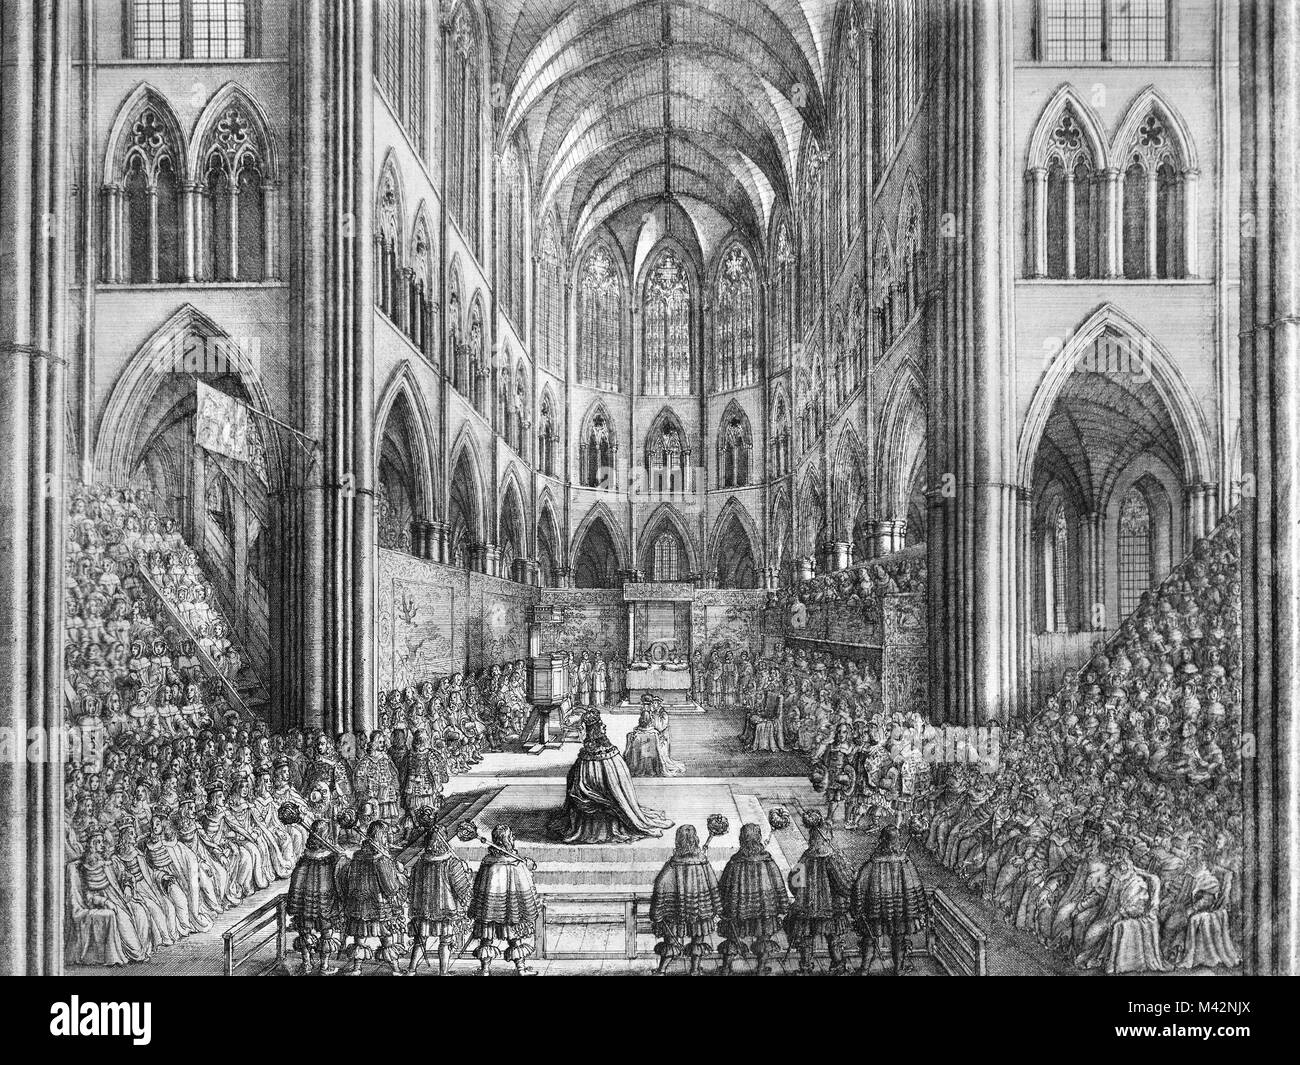 The Coronation of King Charles II, an etching by Wenceslas Hollar, 1662. - Stock Image